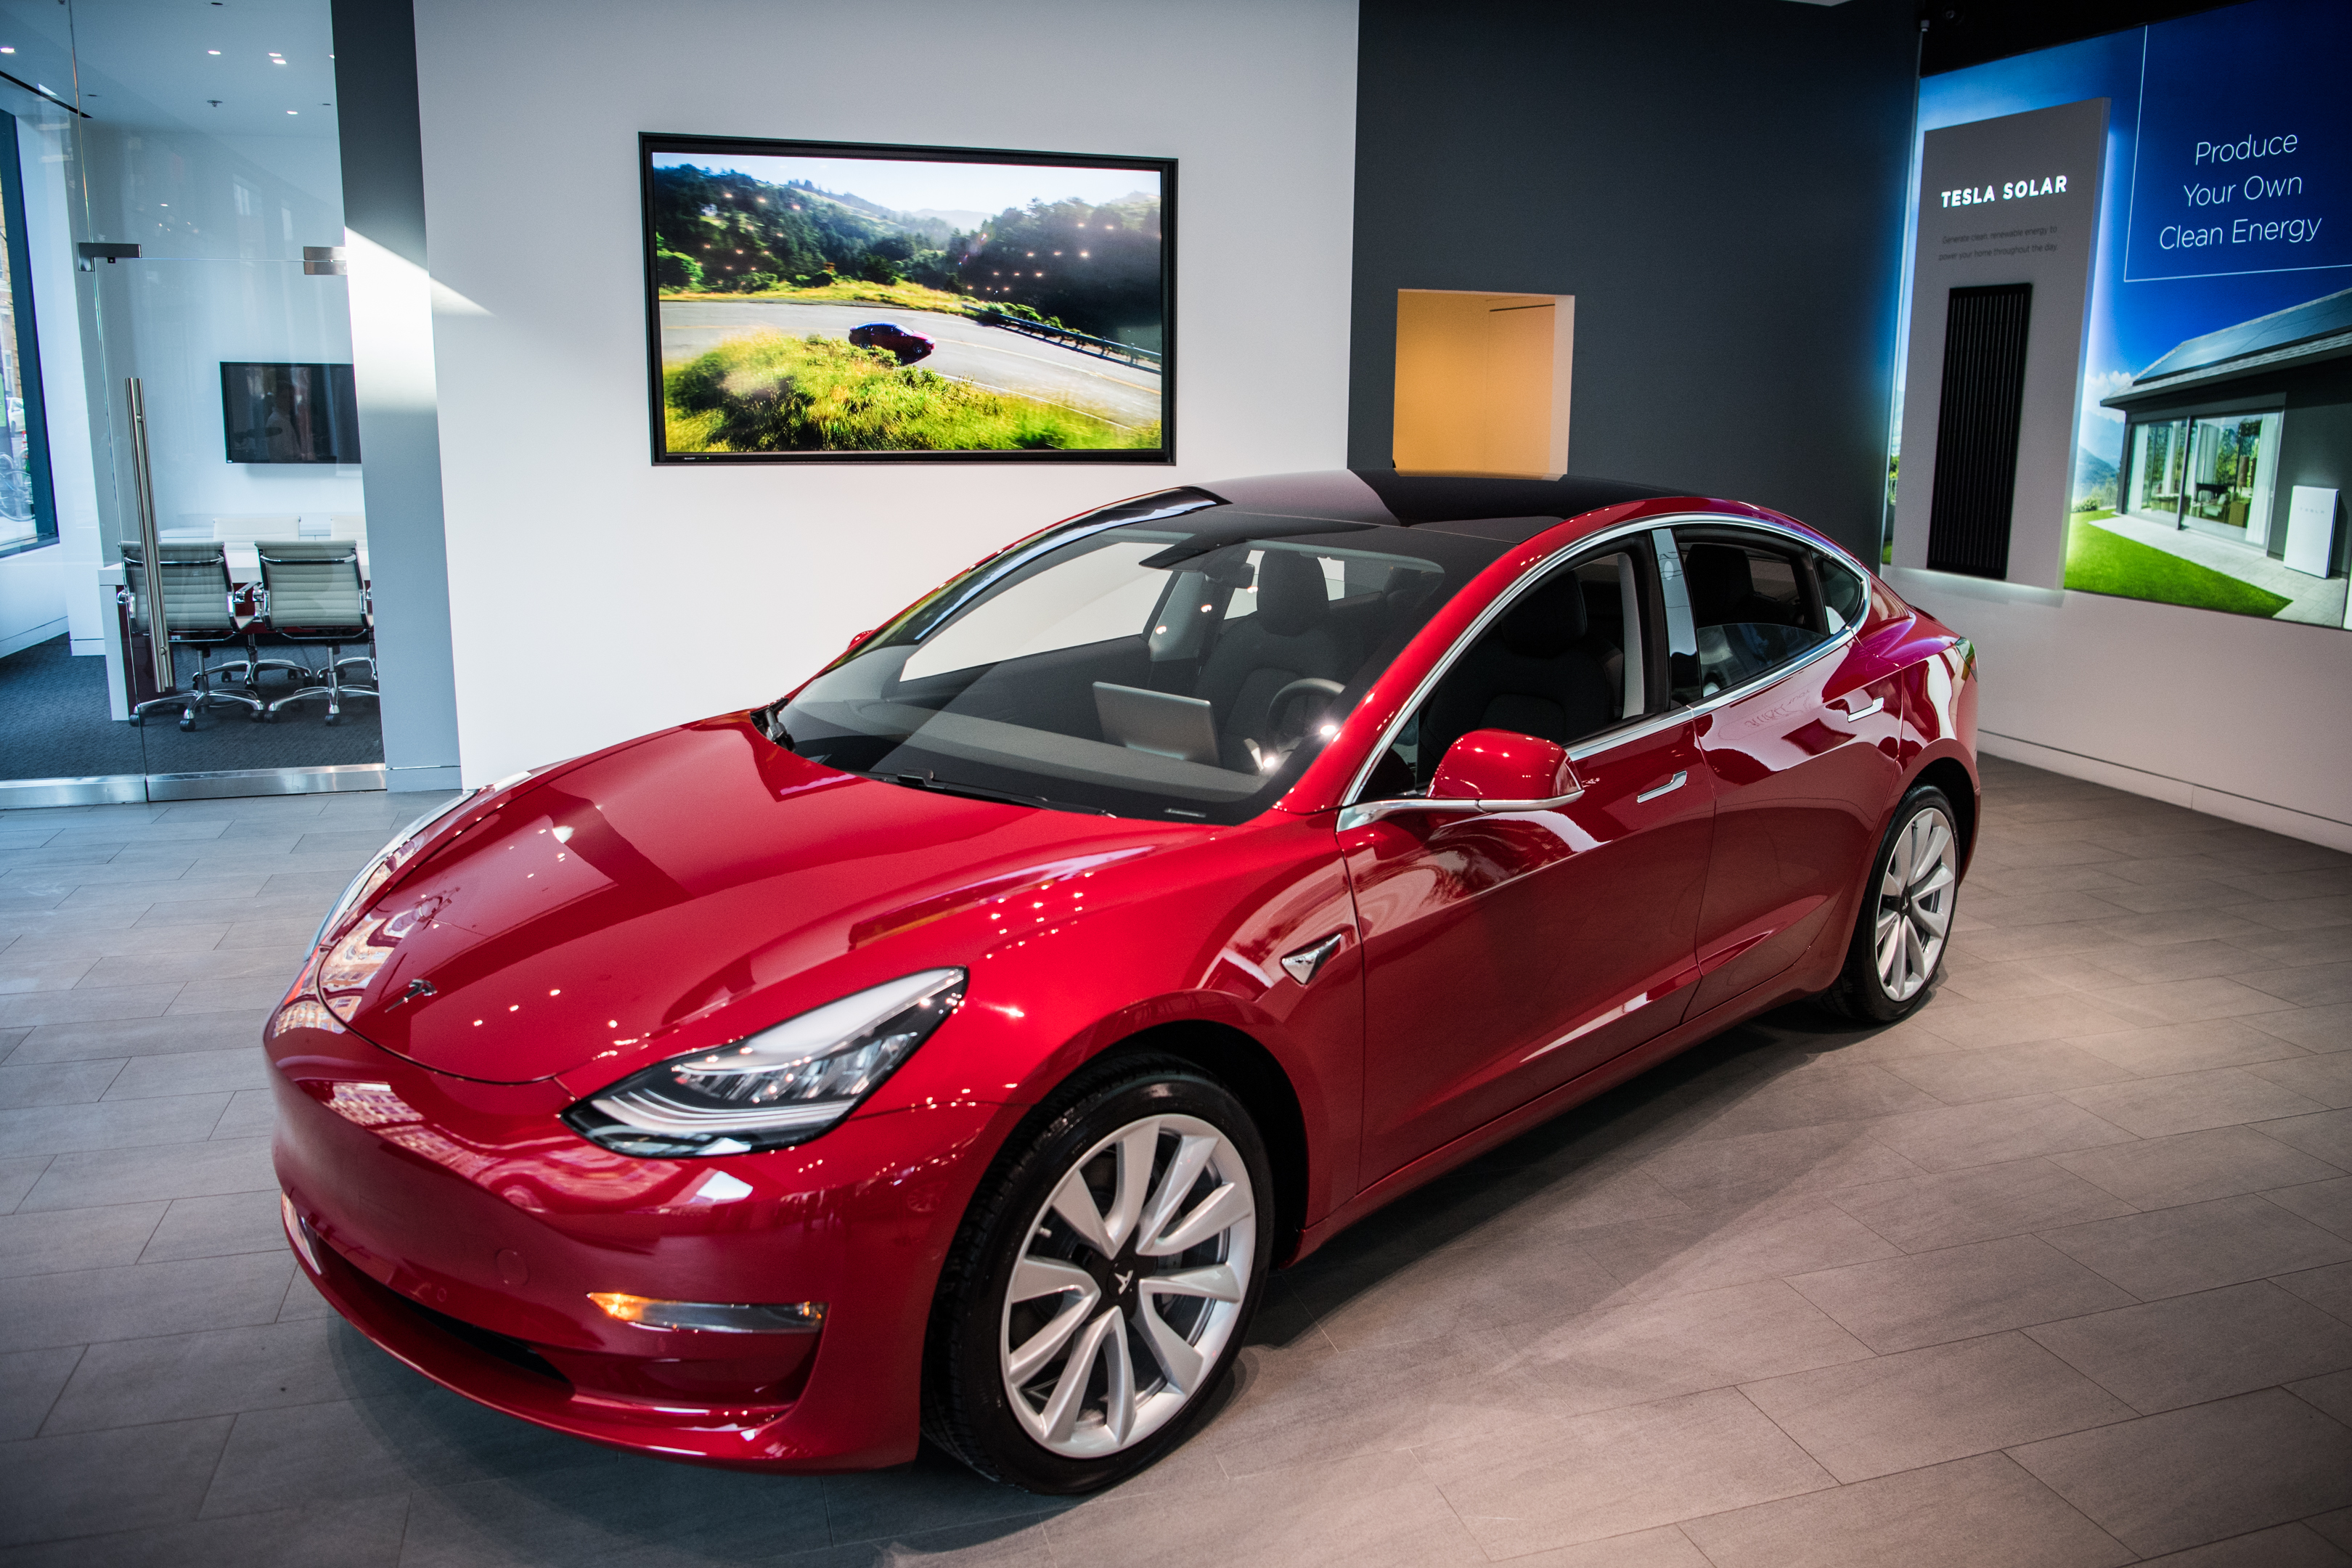 Enlarge Tesla S New Model 3 Car On Display Is Seen Friday January 26 2018 At The In Washington Dc